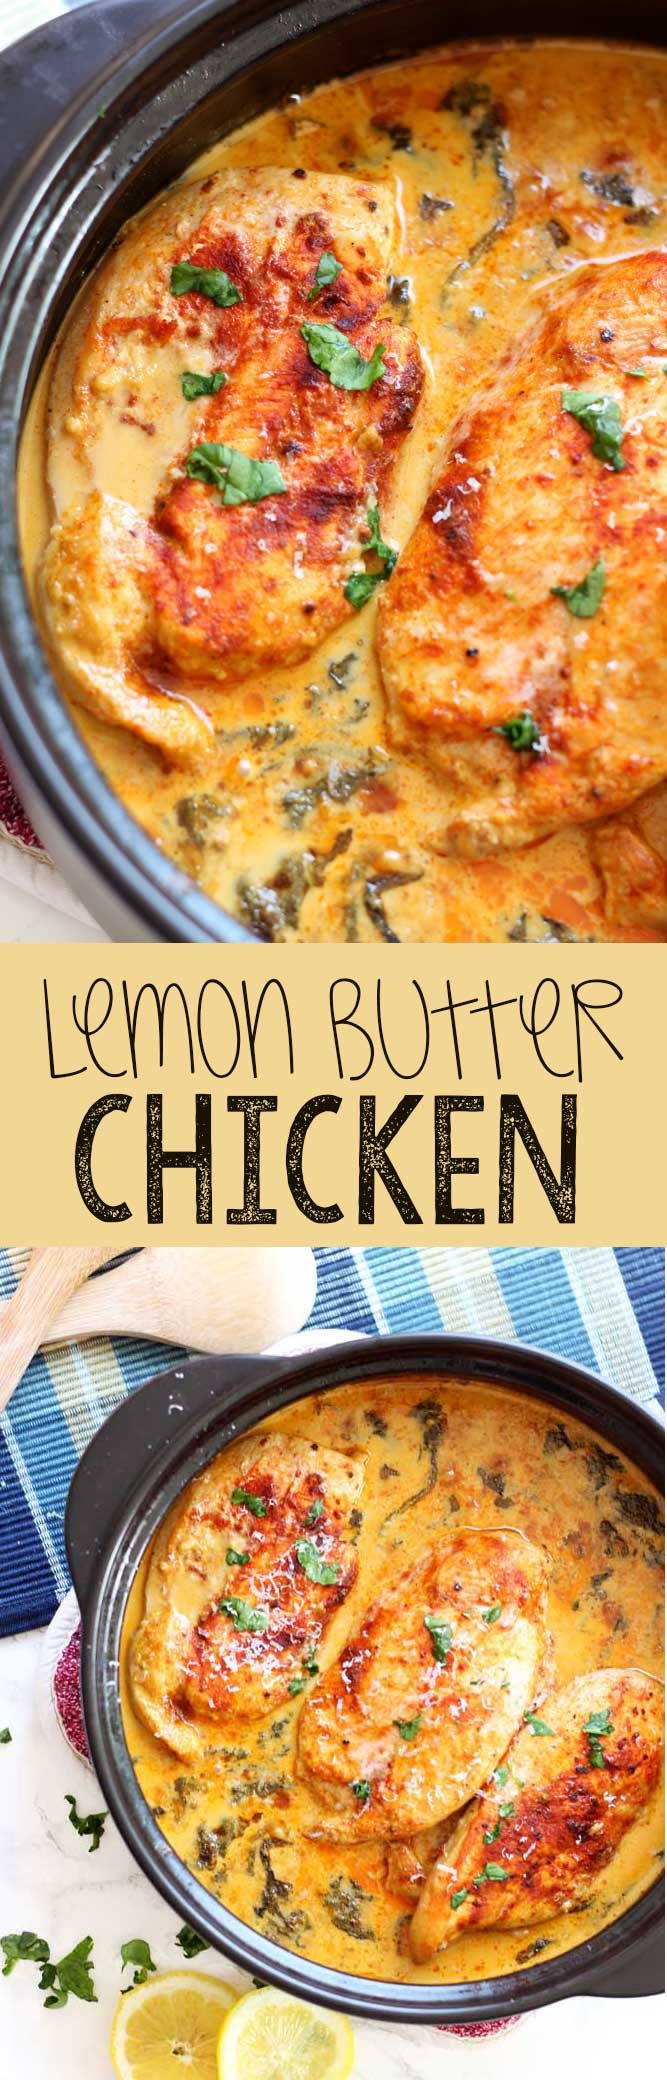 Easy chicken dinner, this lemon butter chicken is savory, mouthwatering, and…